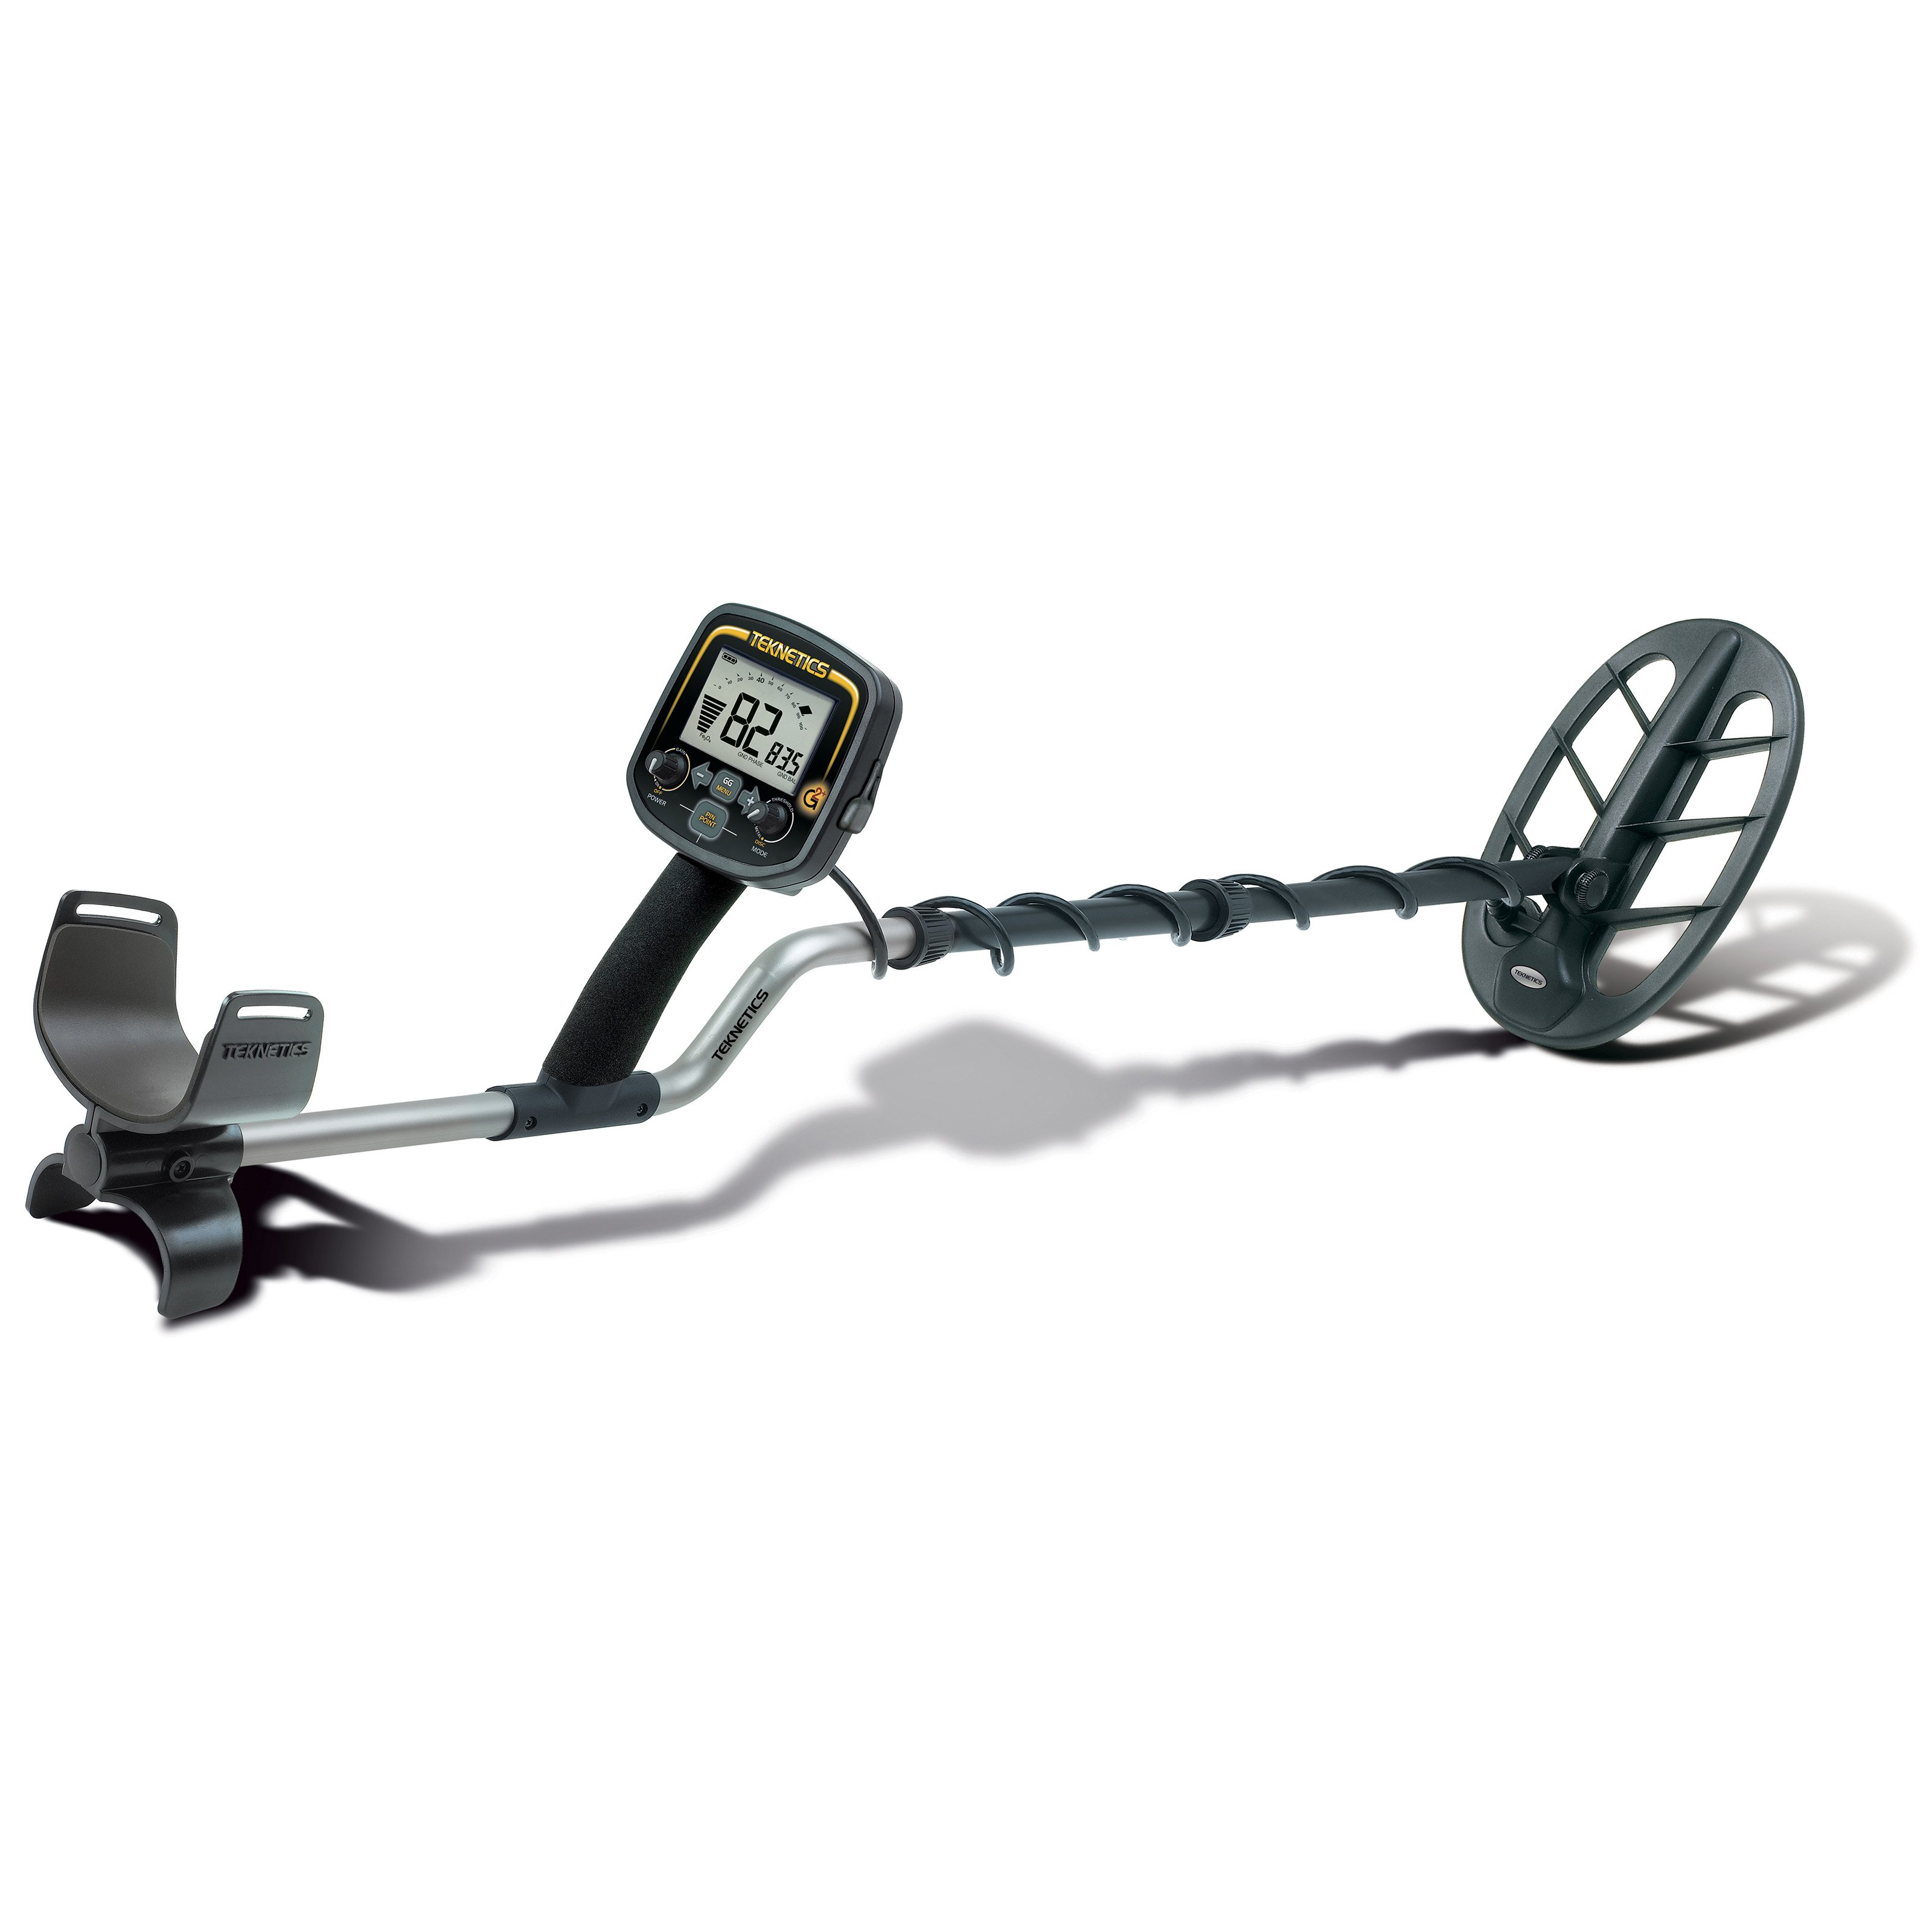 Teknetics G2+ Metal Detector by First Texas Products LLC